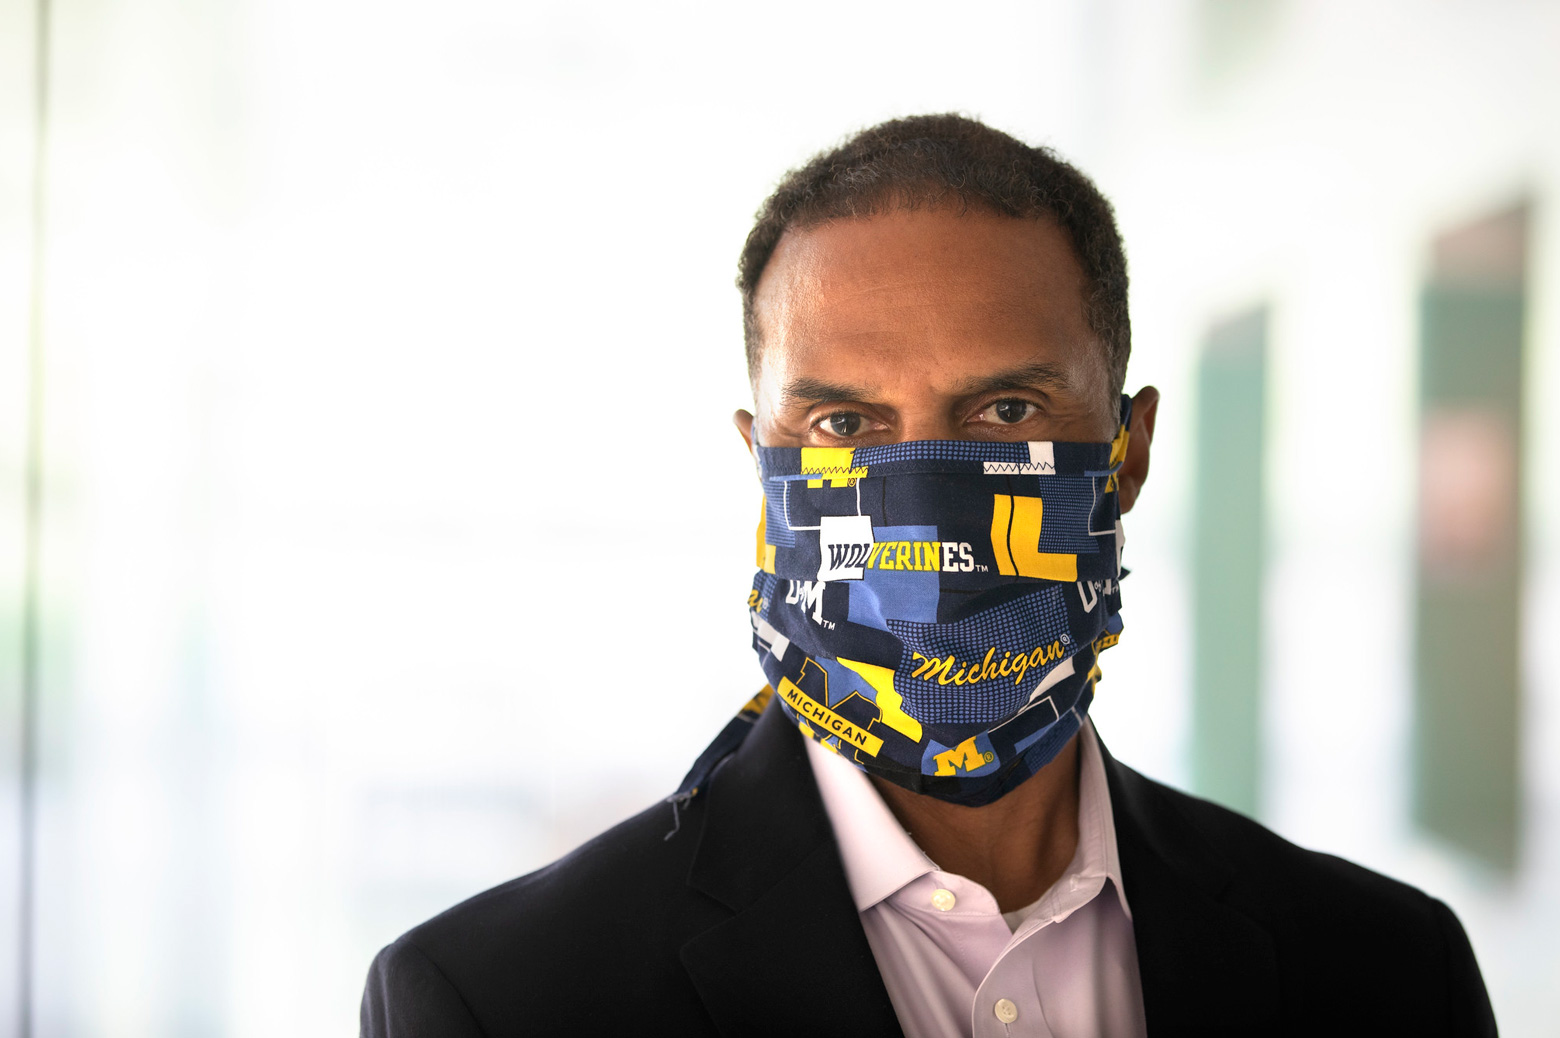 Dean Gallimore spots a mask on campus posing for a portrait. Wednesday, August 26, 2020.